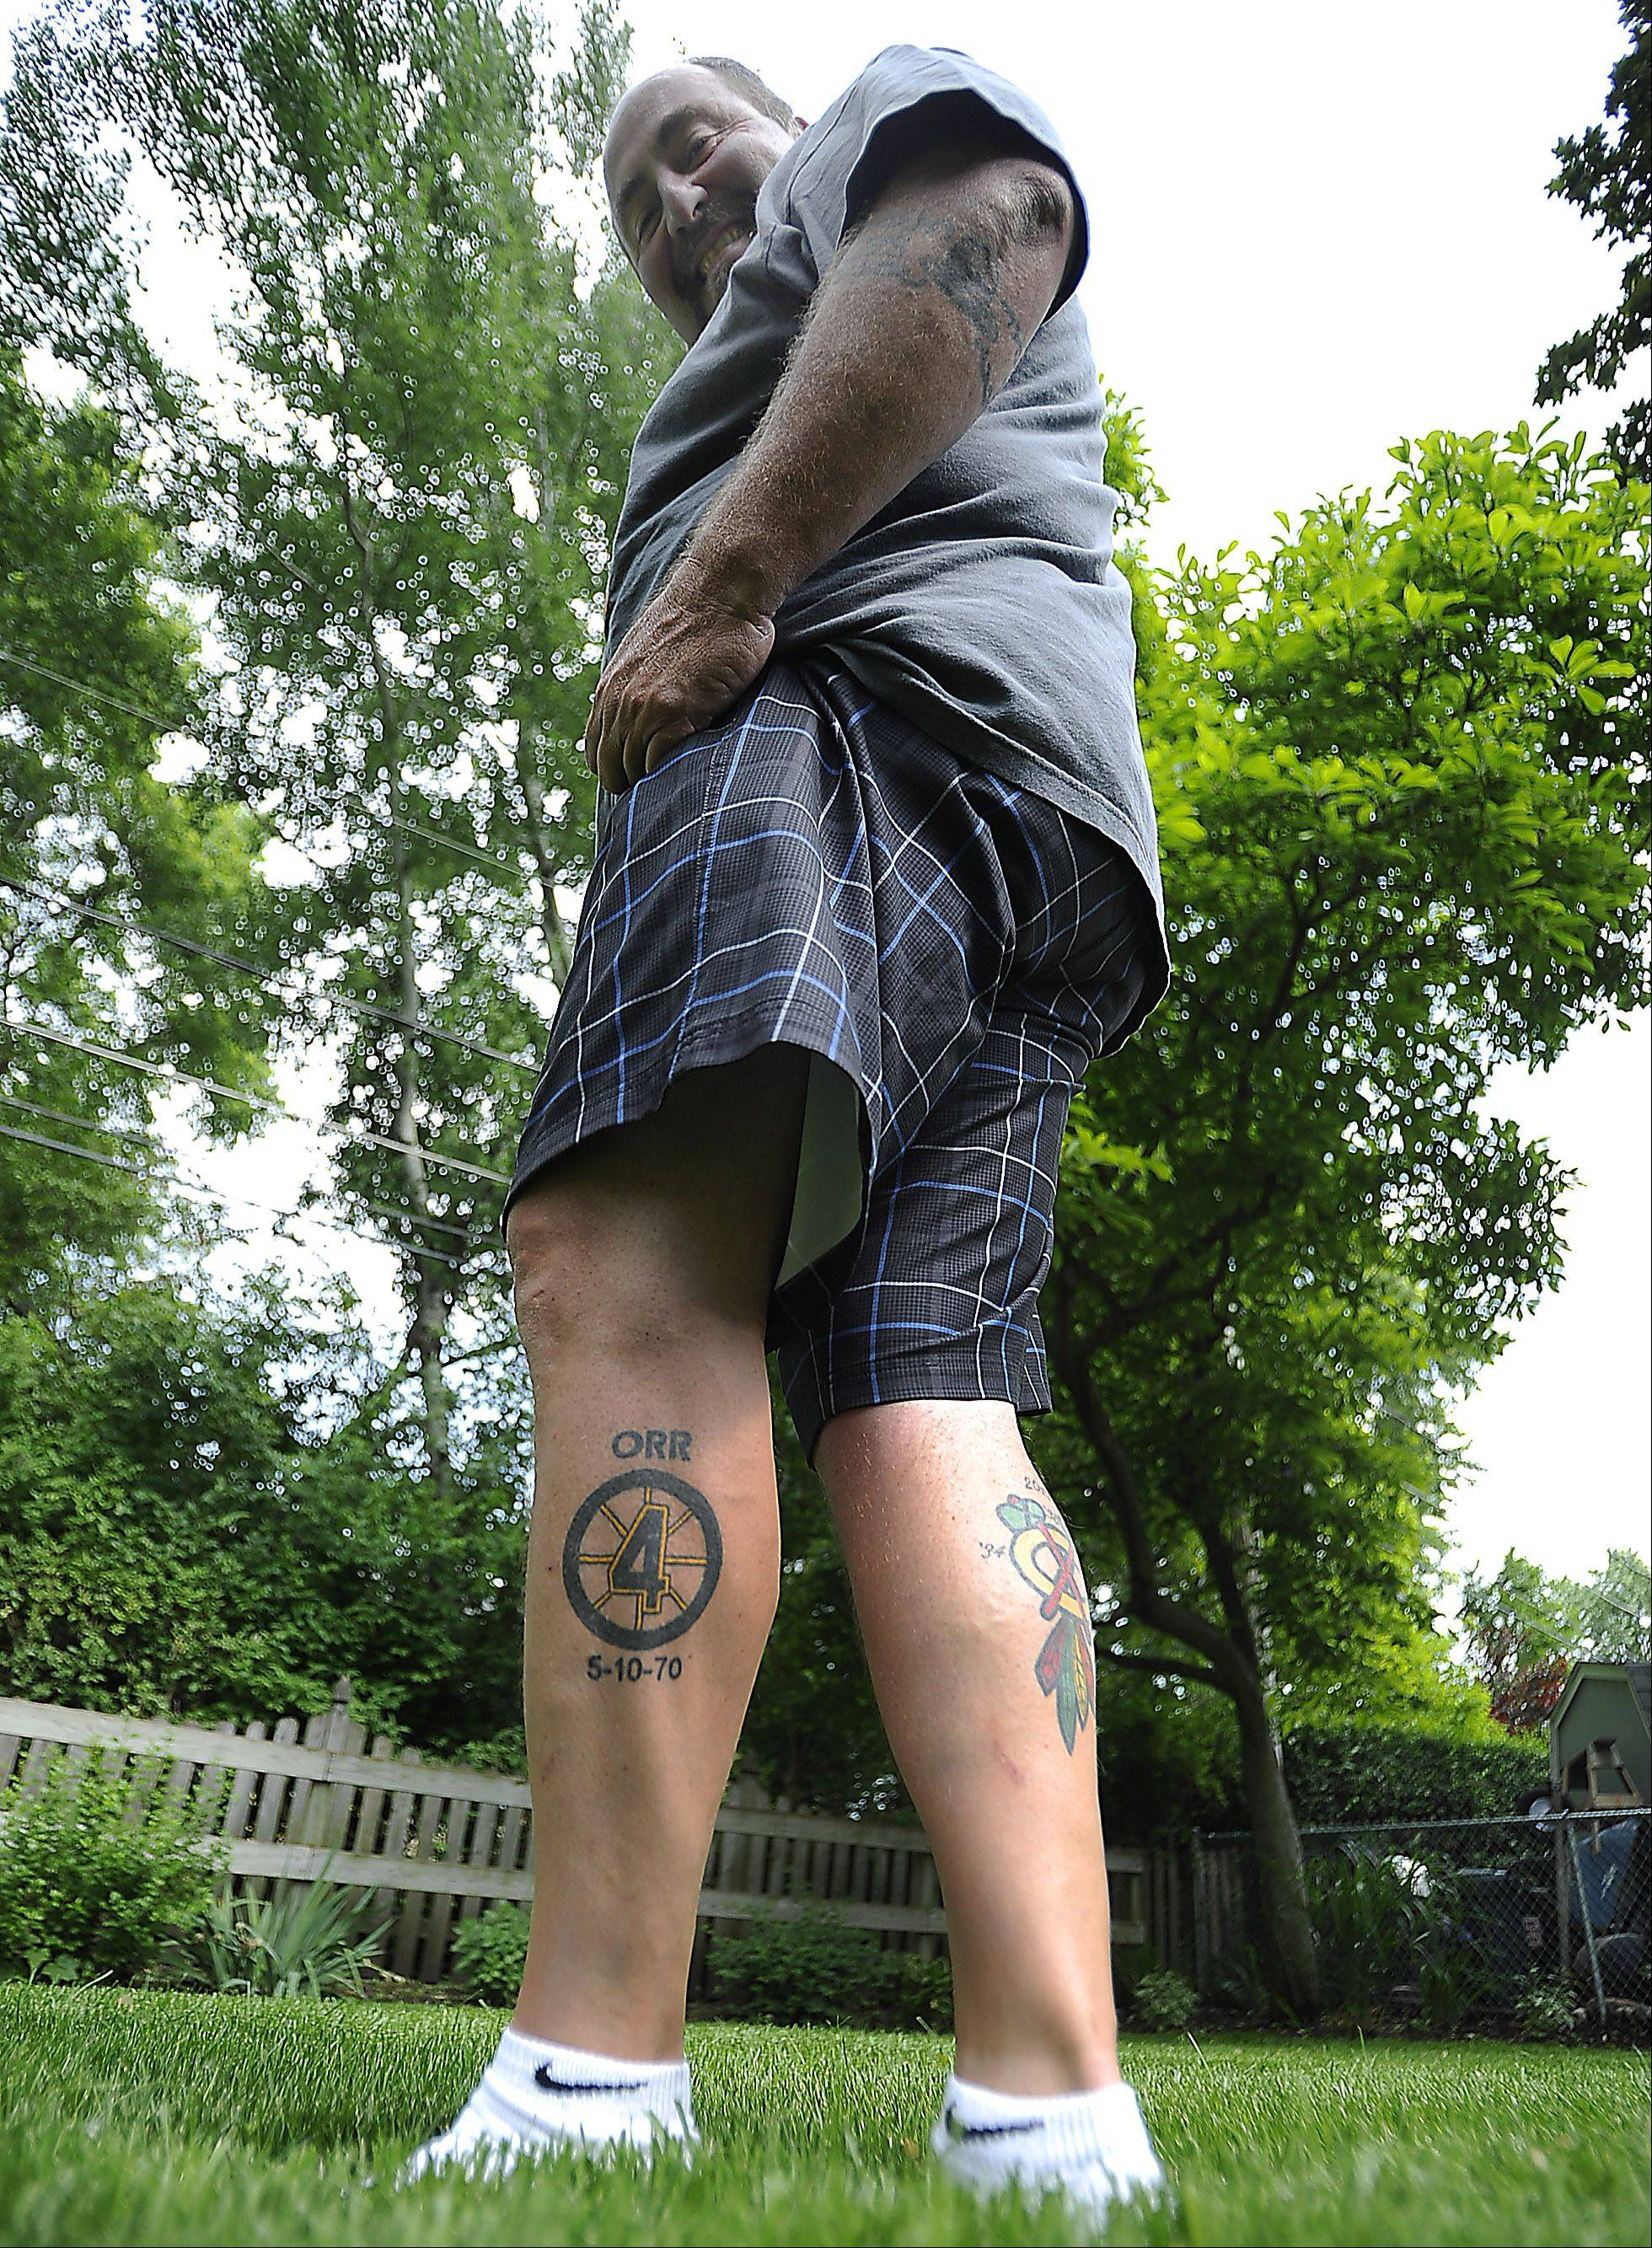 Steve Lang of Mount Prospect has a Chicago Blackhawks tattoo on one leg and a tattoo honoring Boston Bruins player Bobby Orr on the other. Lang grew up in the Chicago area and says he has always been loyal to the Blackhawks, but as a kid he followed the Bruins closely and admired Orr.